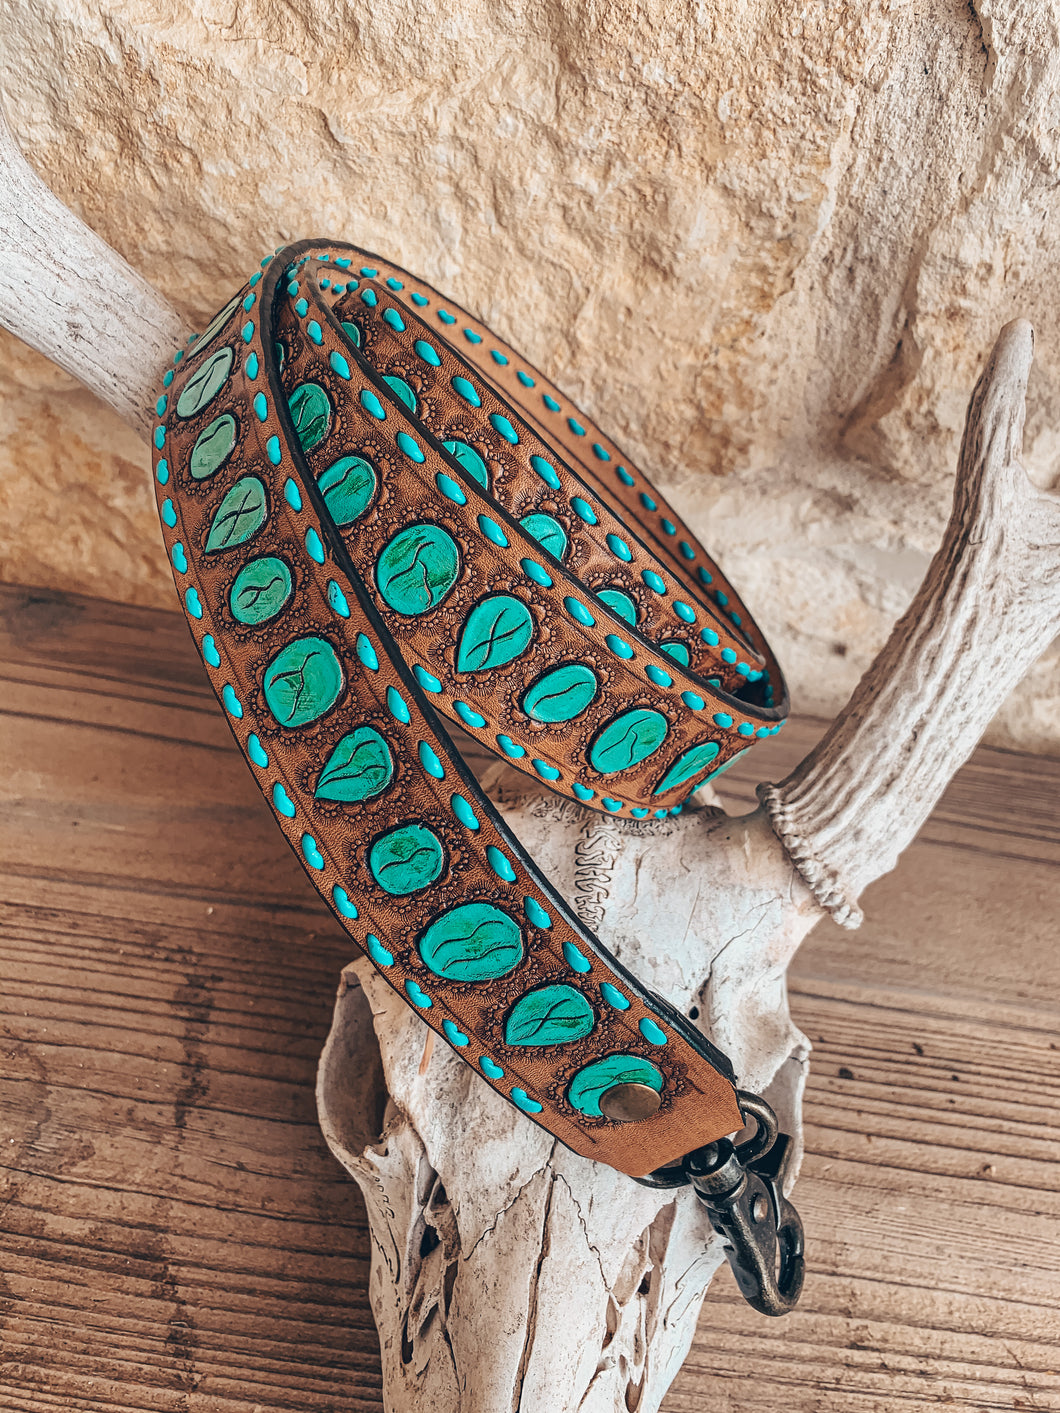 Leather Tooled Purse Strap (Turquoise Stone)